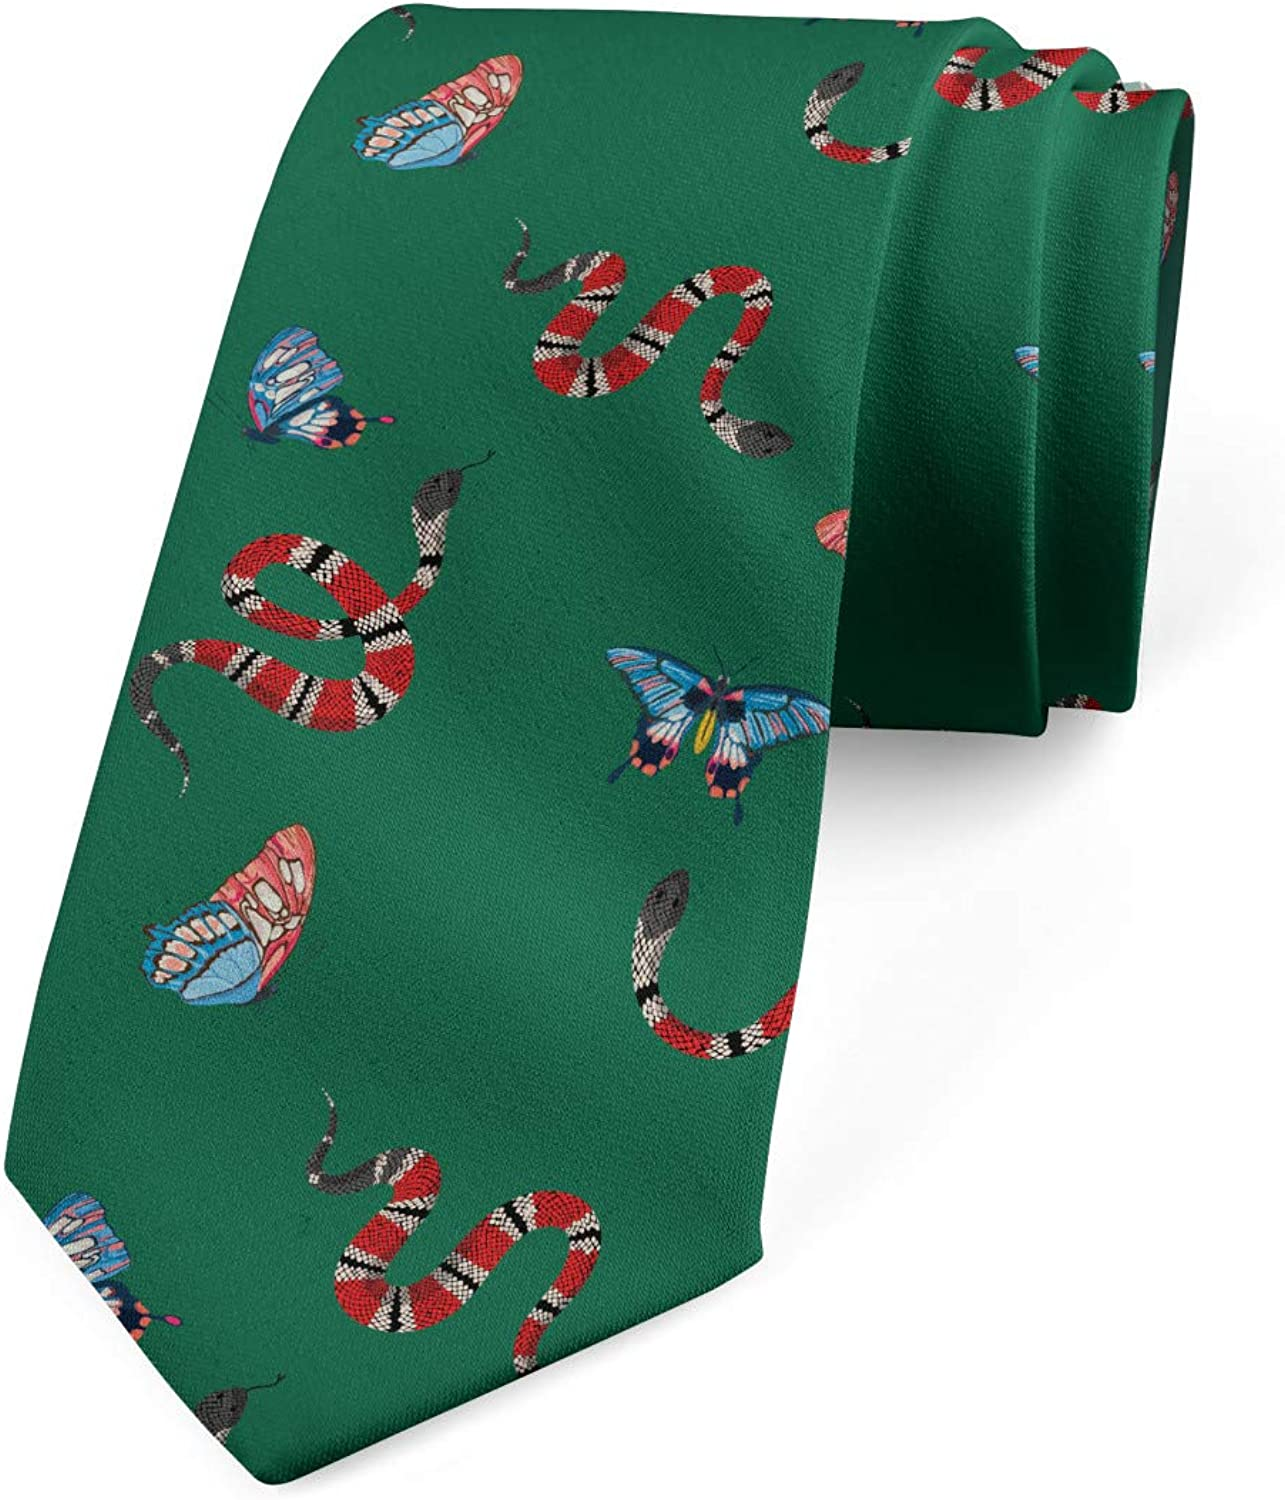 Ambesonne Men's Tie, Fly and Reptile, Necktie, 3.7